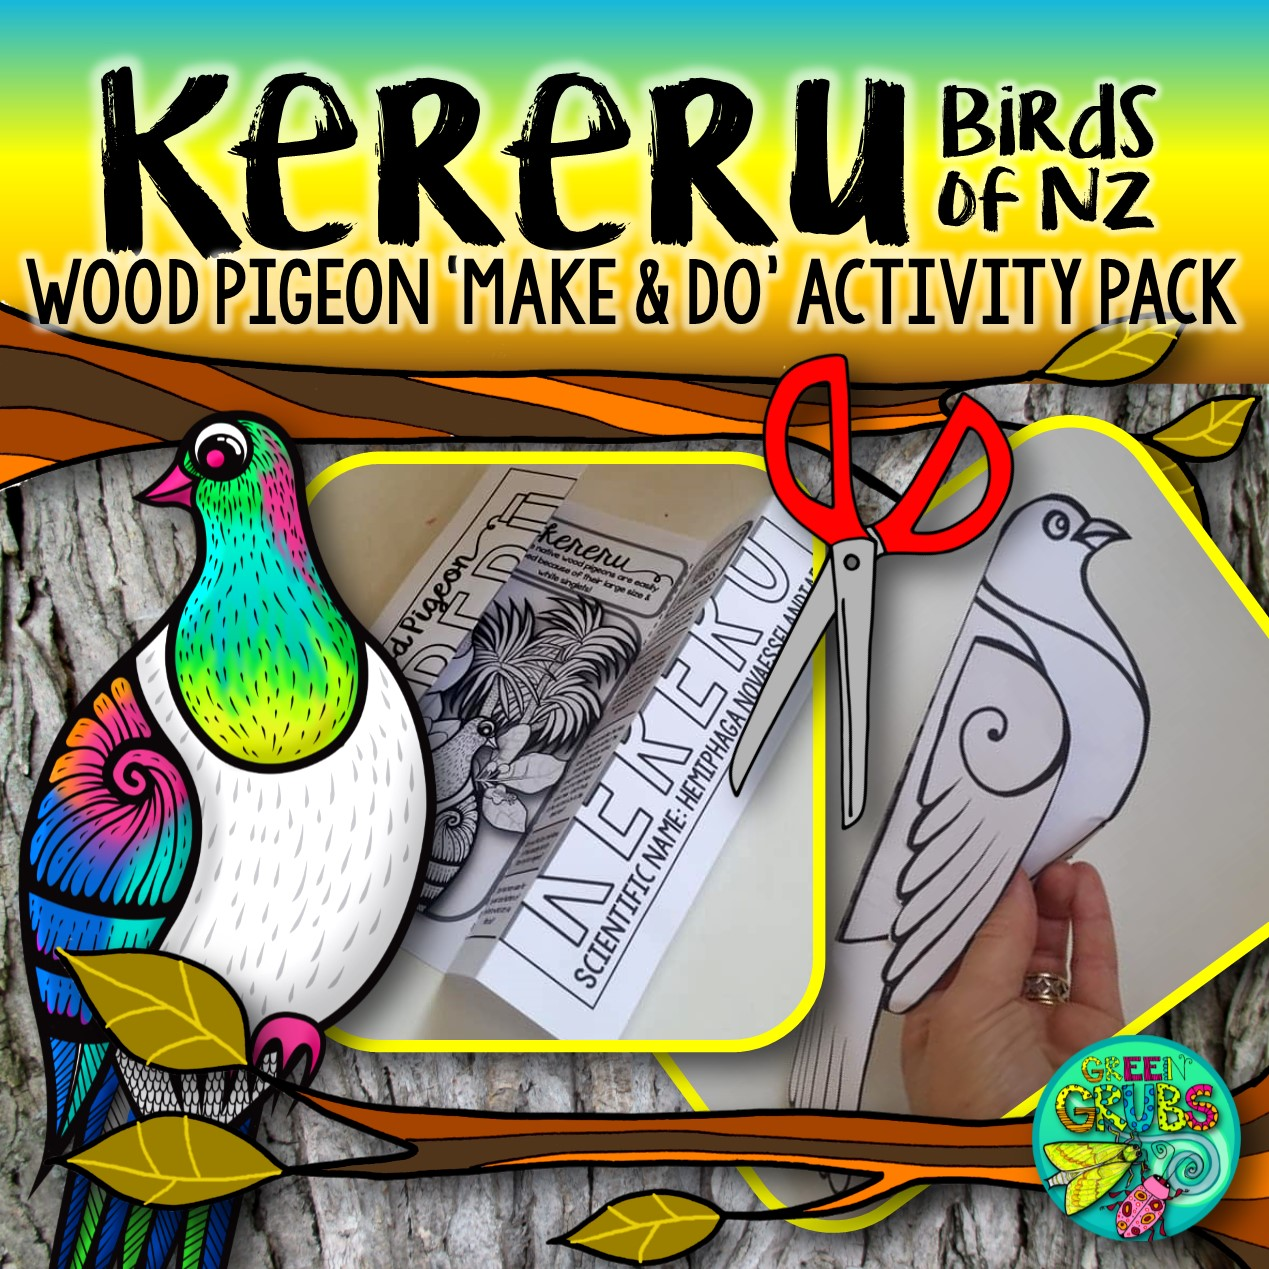 Kereru New Zealand Wood Pigeon Make Amp Do Activity Pack